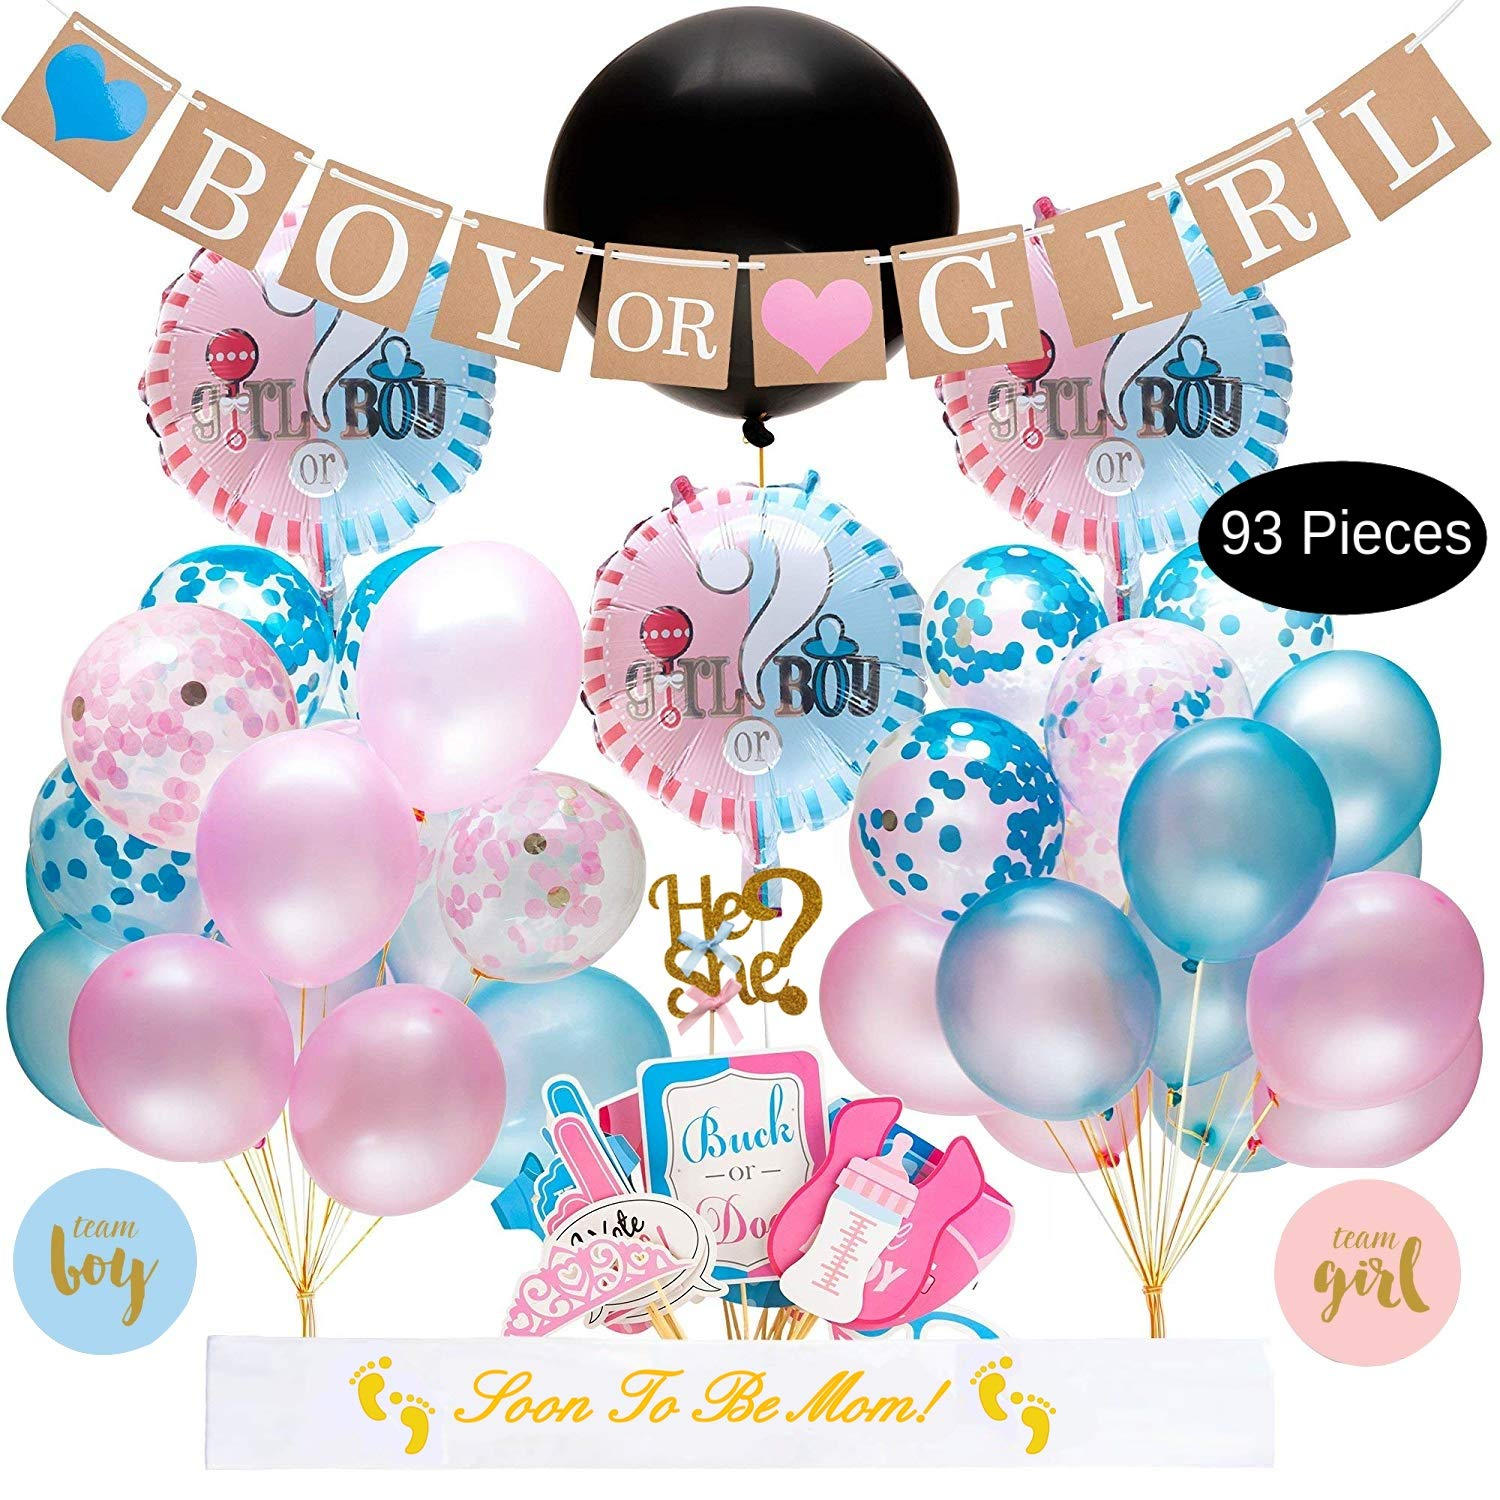 ac6b0cd40 Baby Gender Reveal Party Supplies Kit - 93 Piece Baby Shower Decorations  With Big Black Balloon